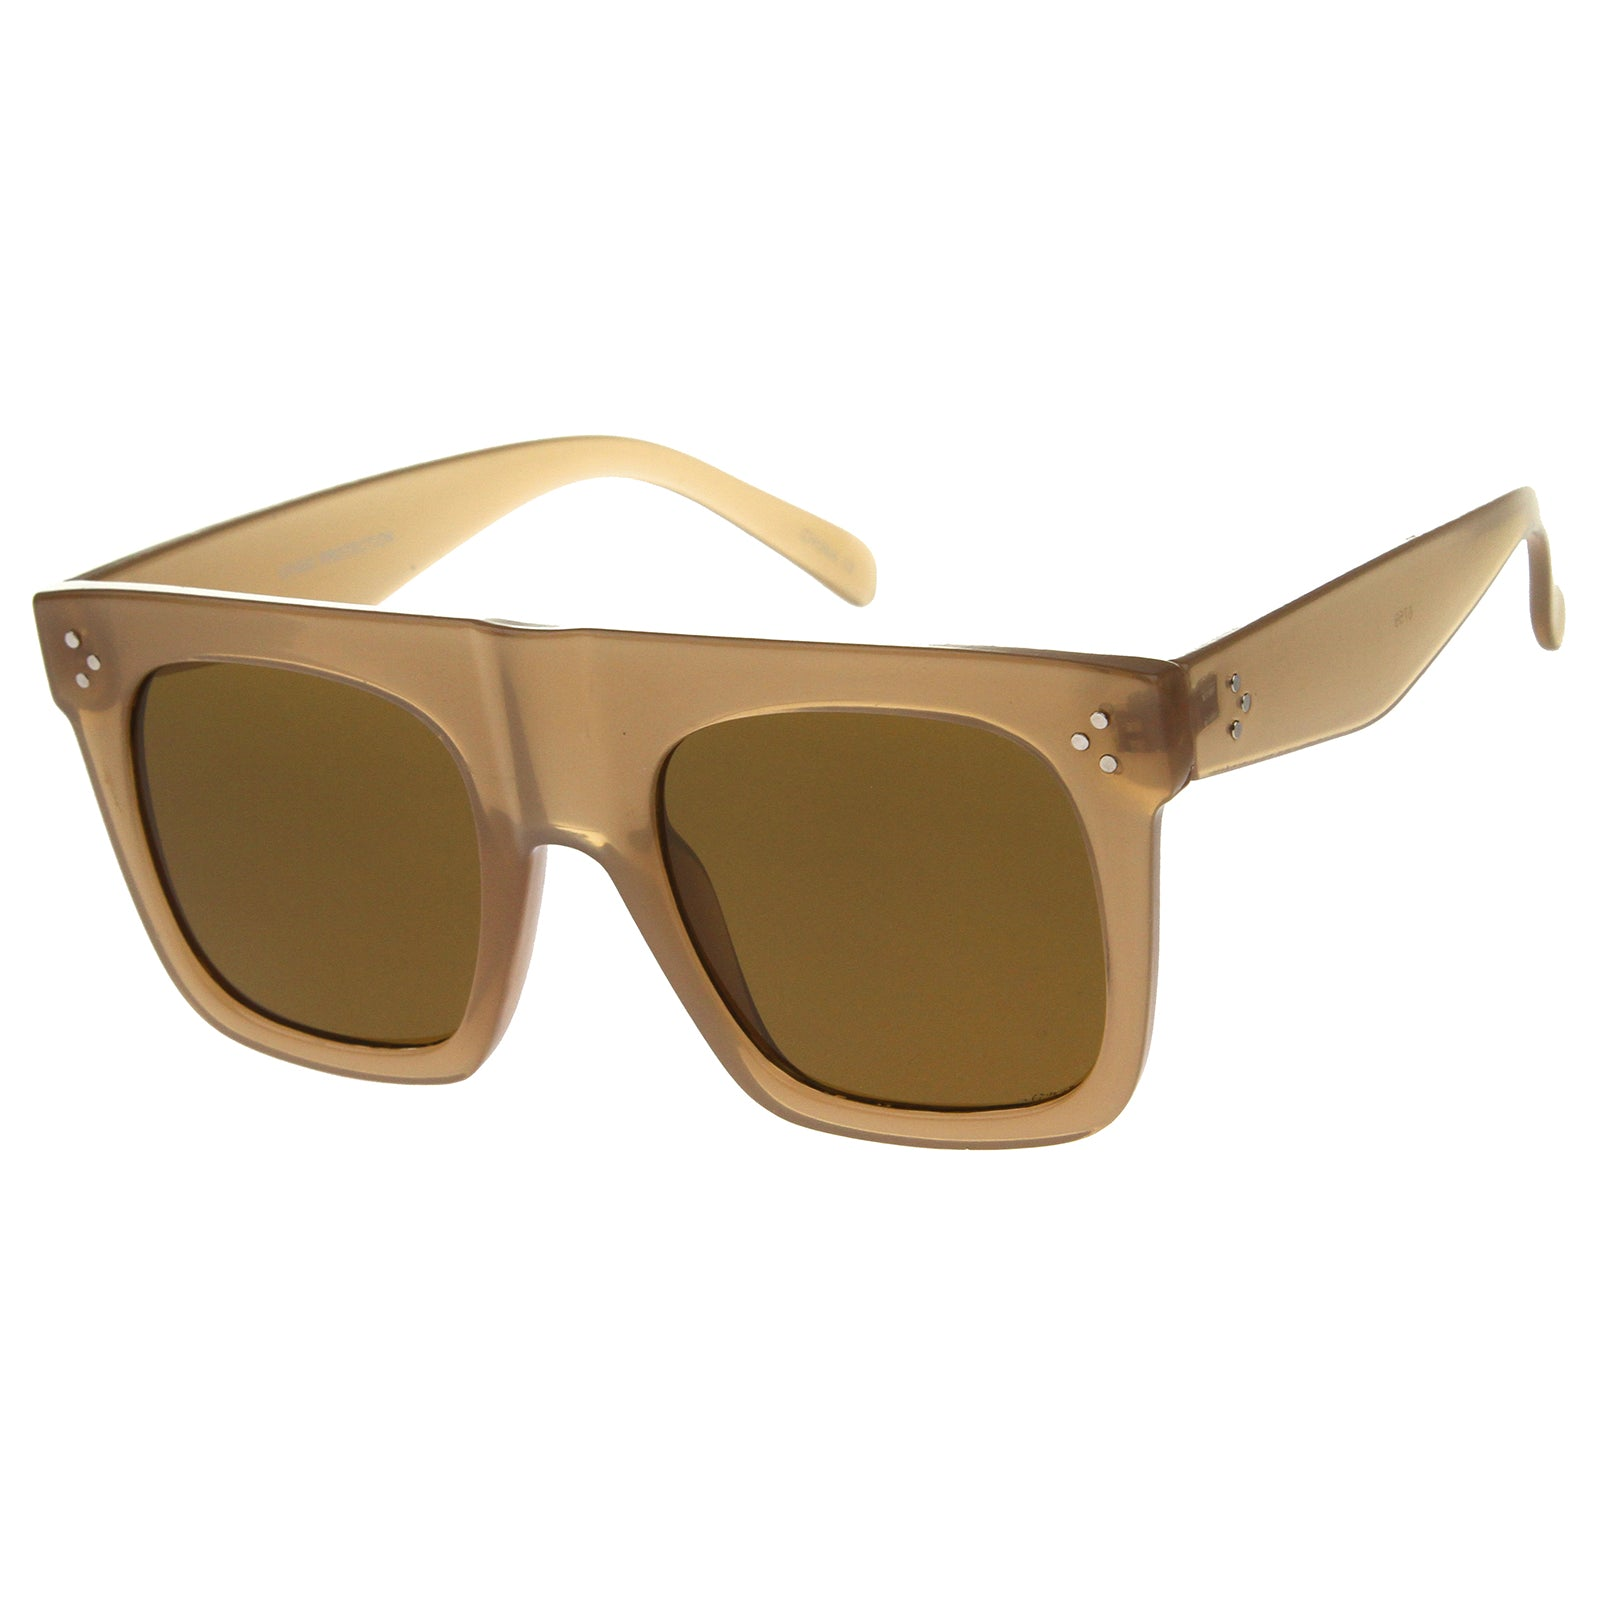 Modern Fashion Bold Flat Top Square Horn Rimmed Sunglasses 50mm - sunglass.la - 14